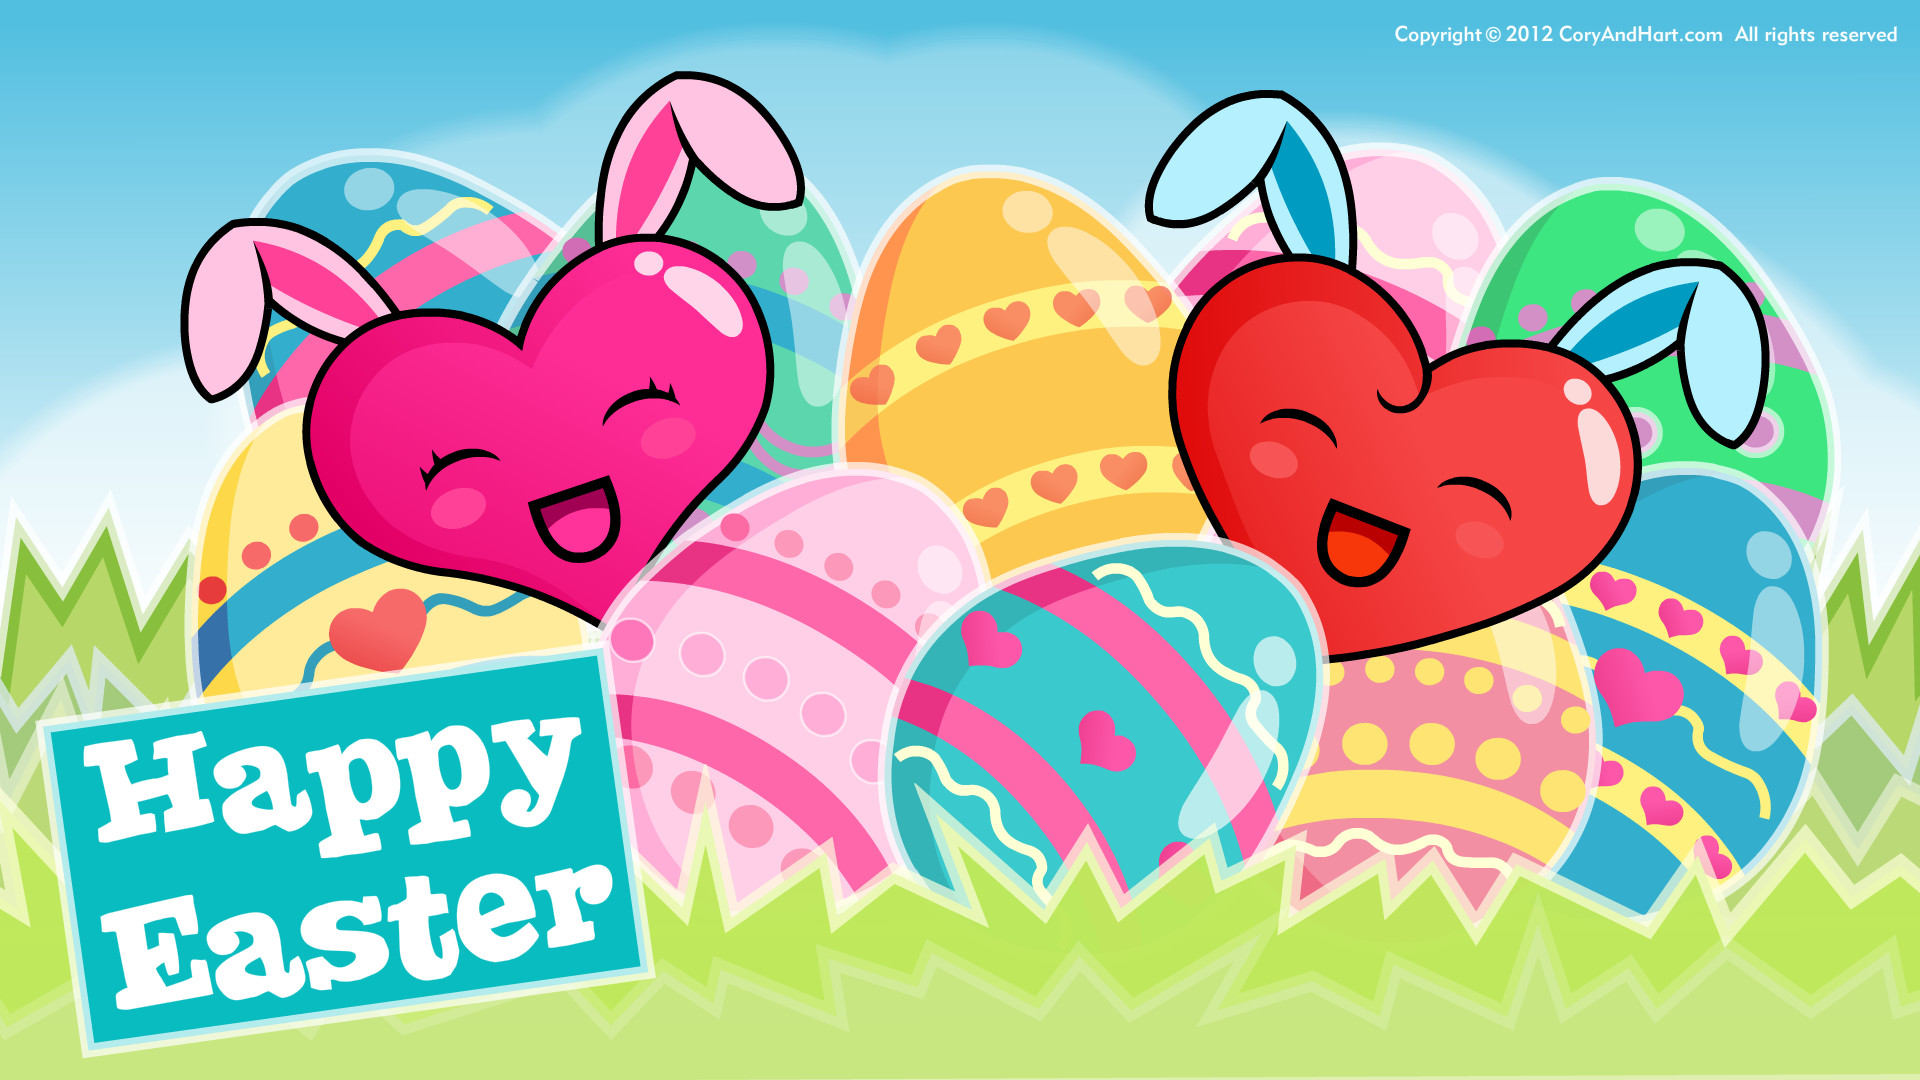 Happy easter eggs and bunnies